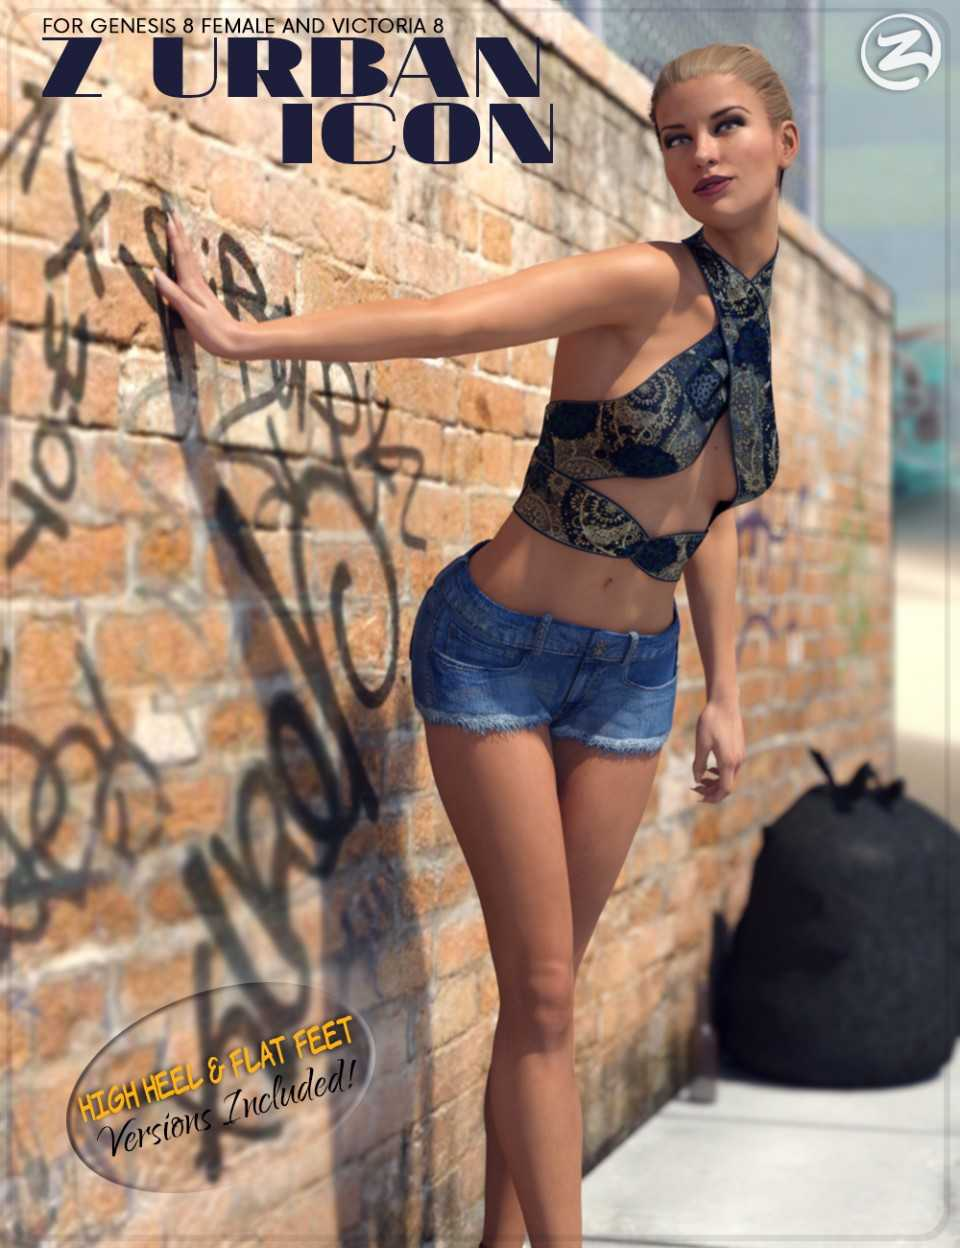 Z Urban Icon – Poses for Genesis 8 Female and Victoria 8